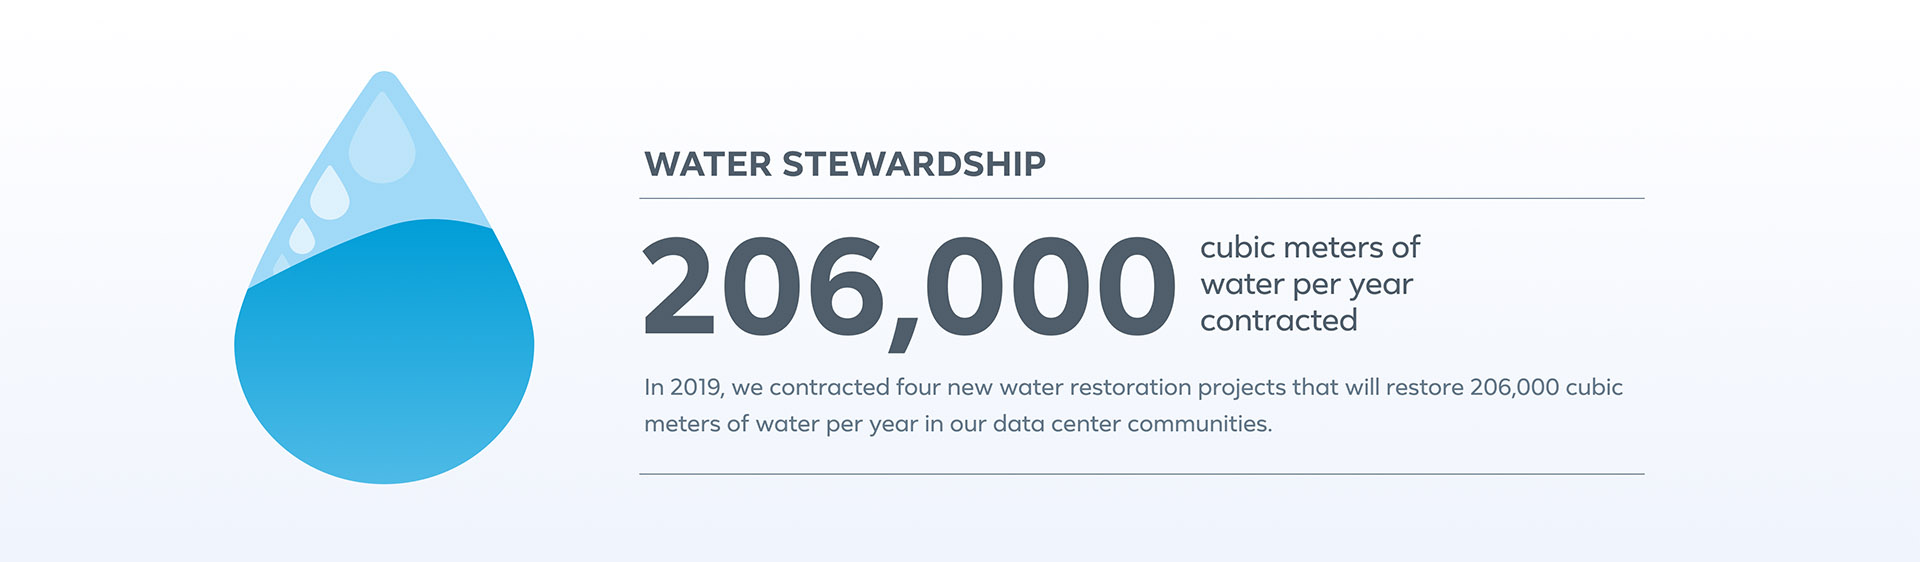 We're investing in water restoration projects that will replenish 206,000 cubic meters (55 million gallons) of water per year.